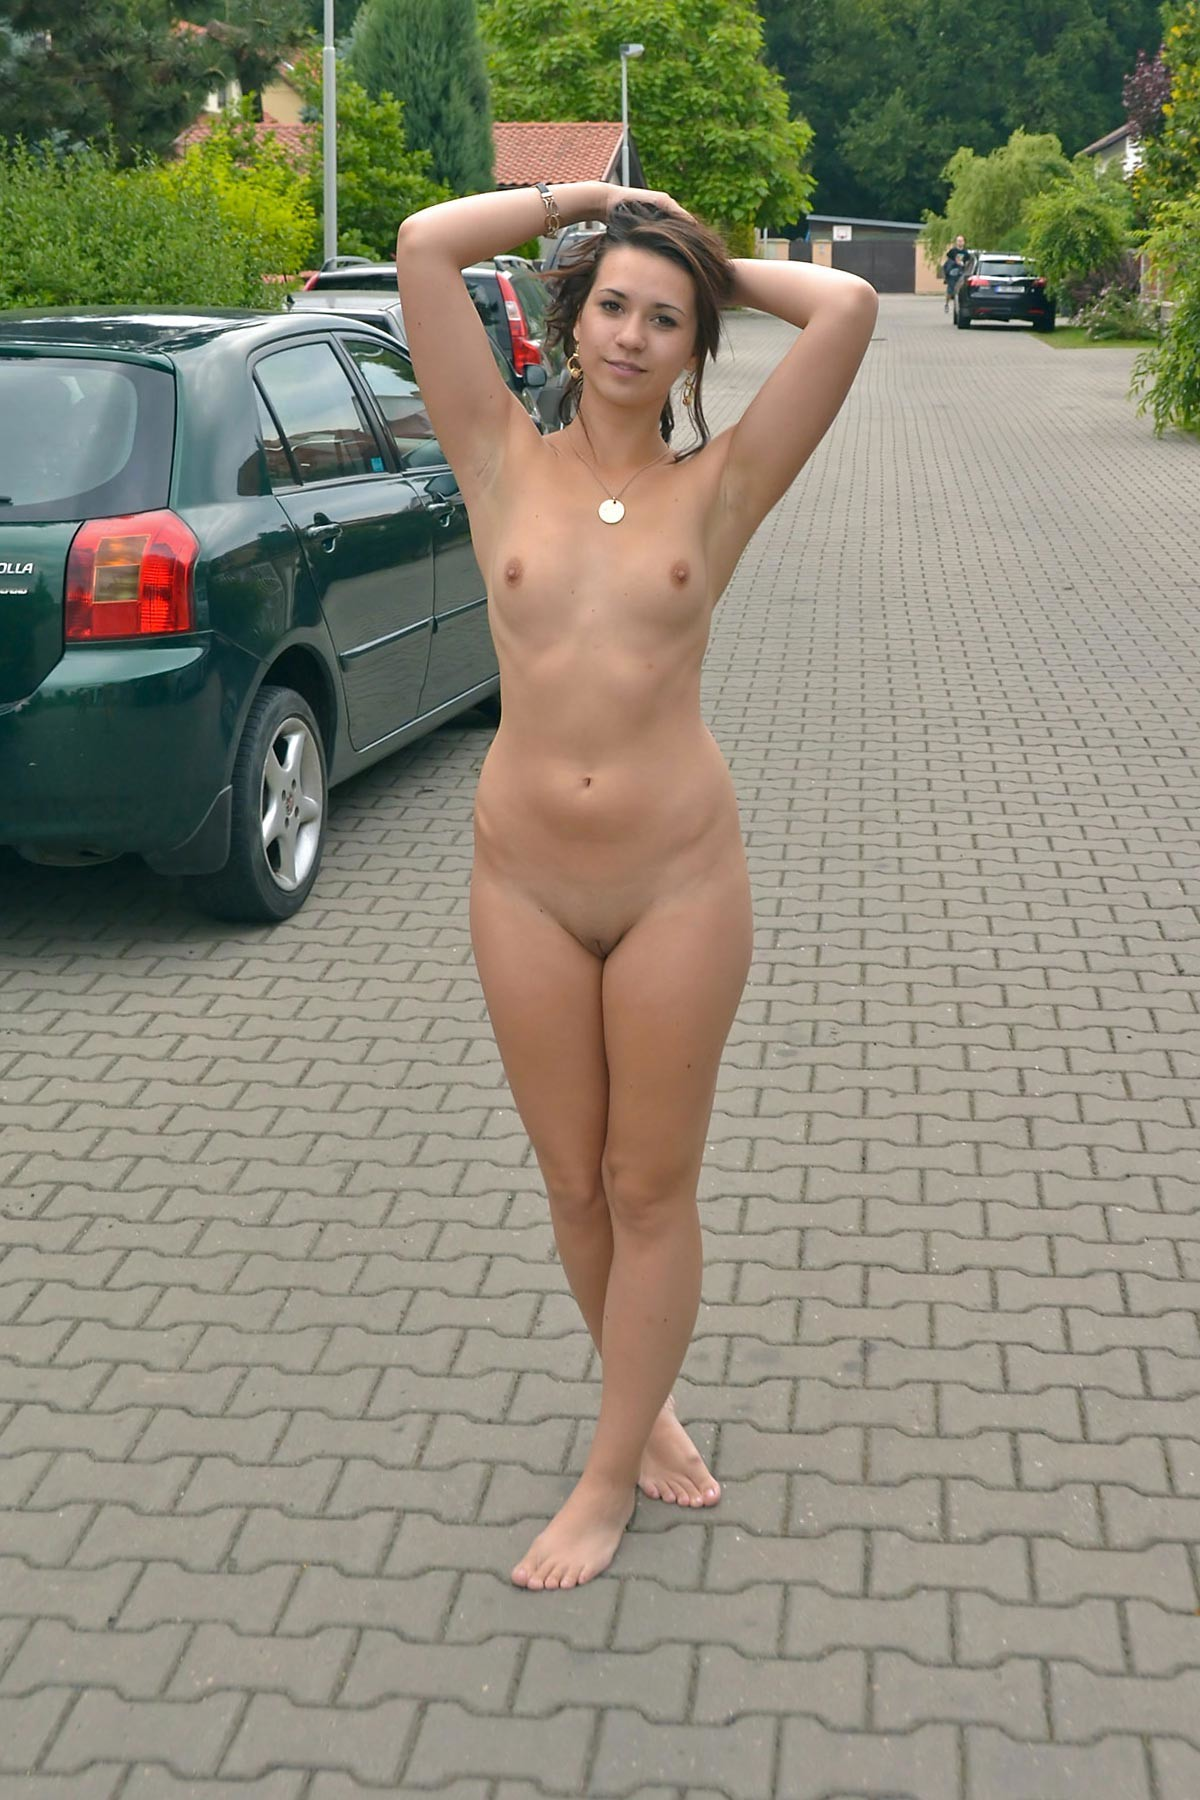 videos-of-women-dared-naked